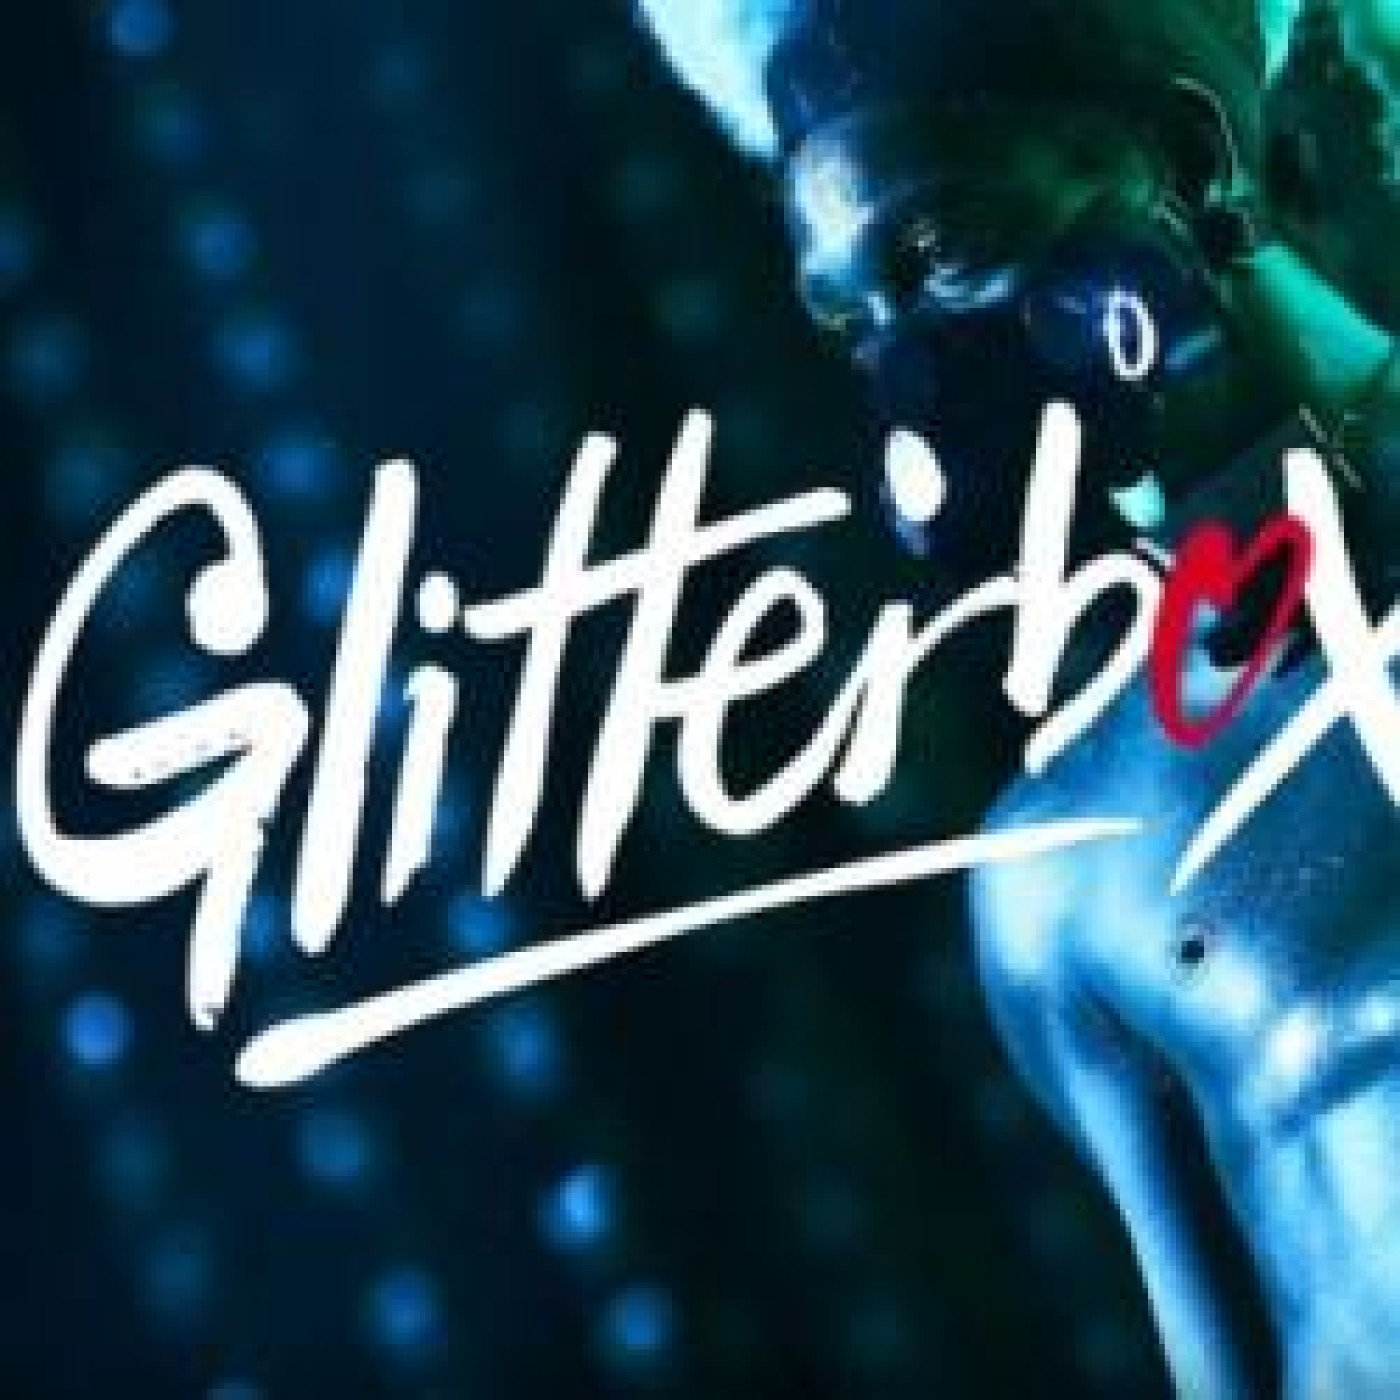 COURS D'ELECTRO GLITTERBOX